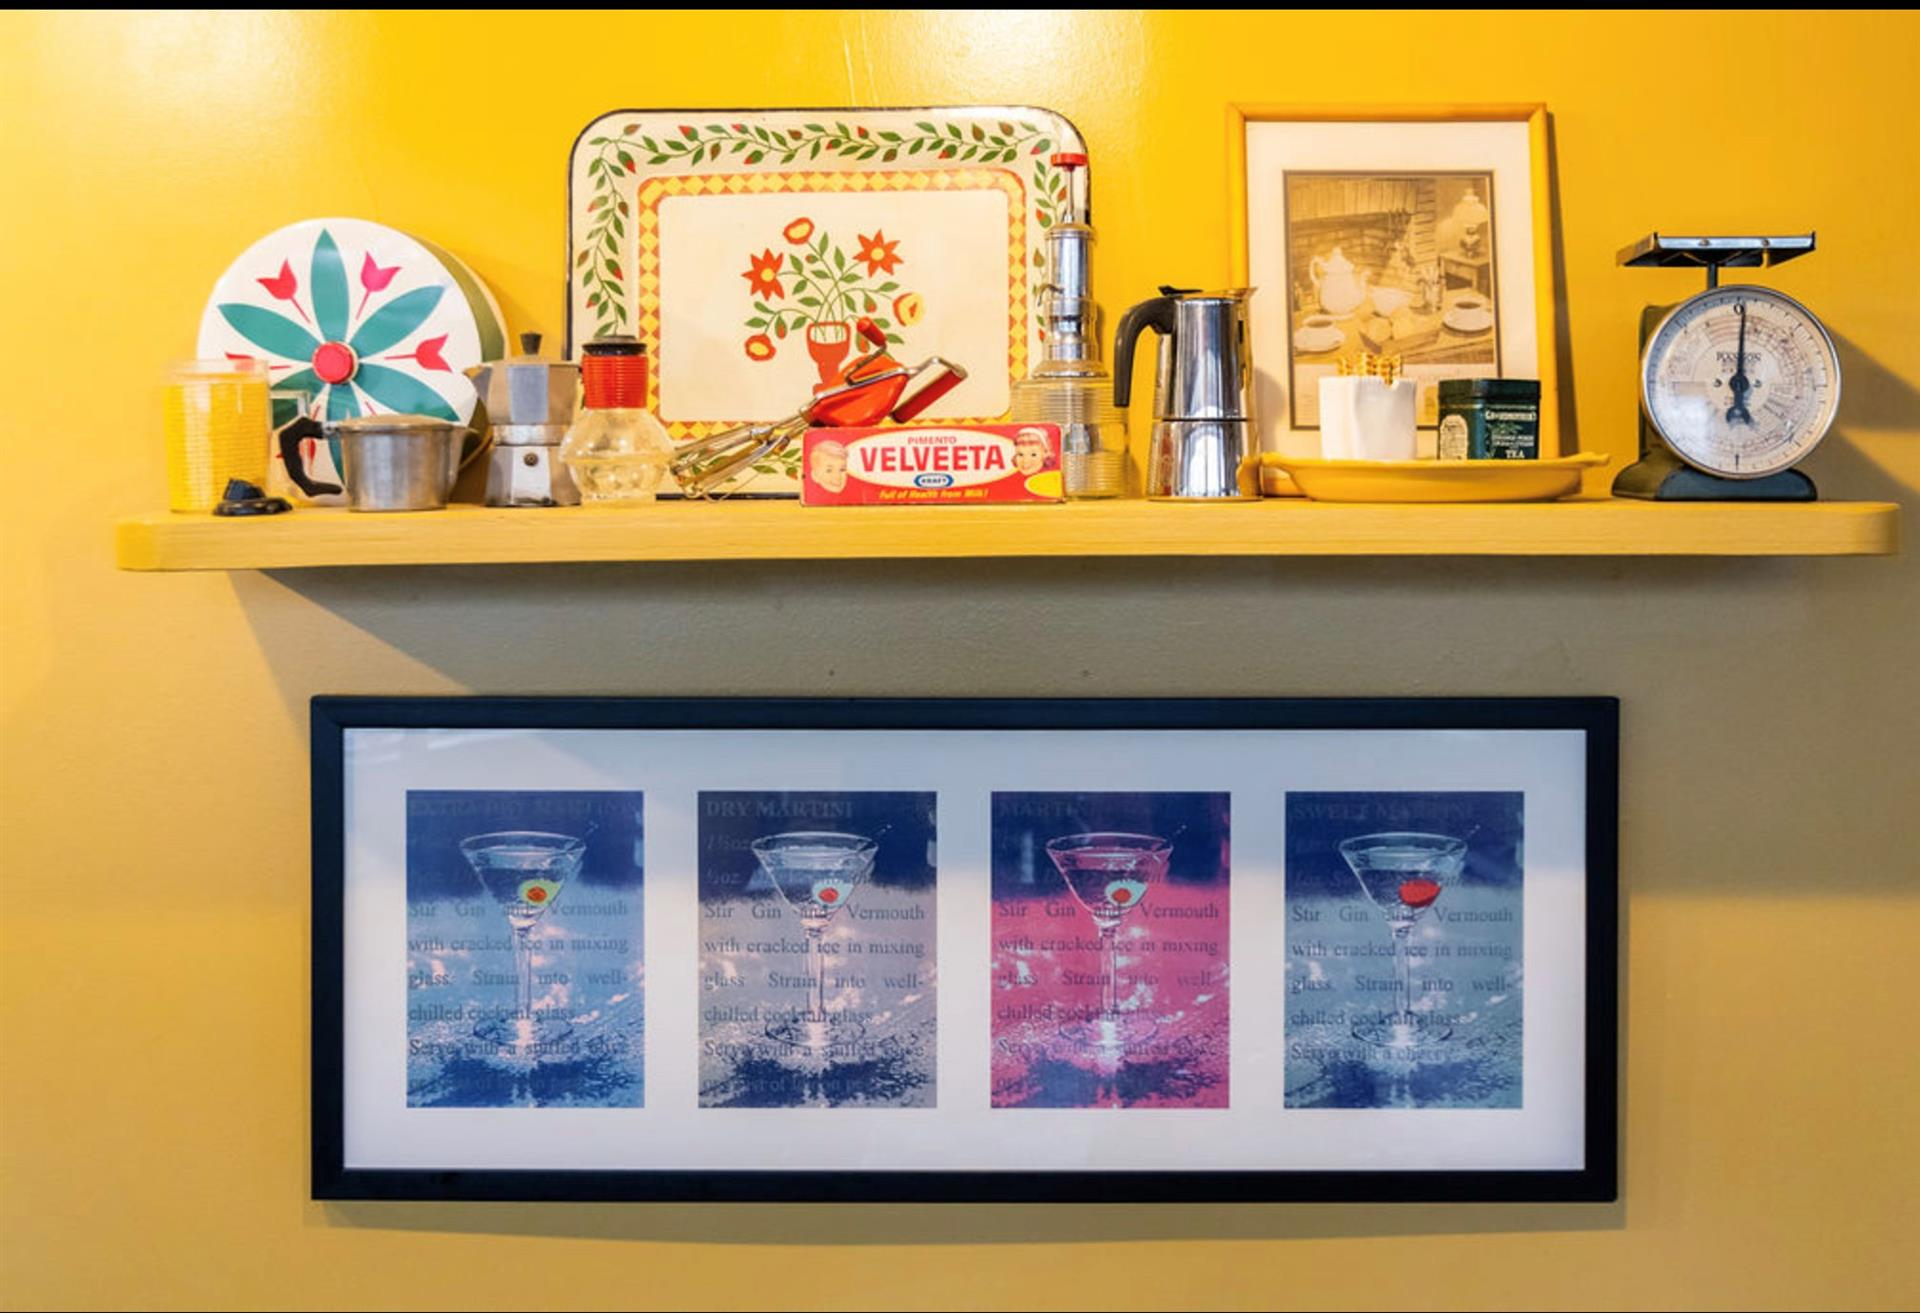 a shelf with decorative plates, an espresso machine and a picture frame of different colored martini glasses